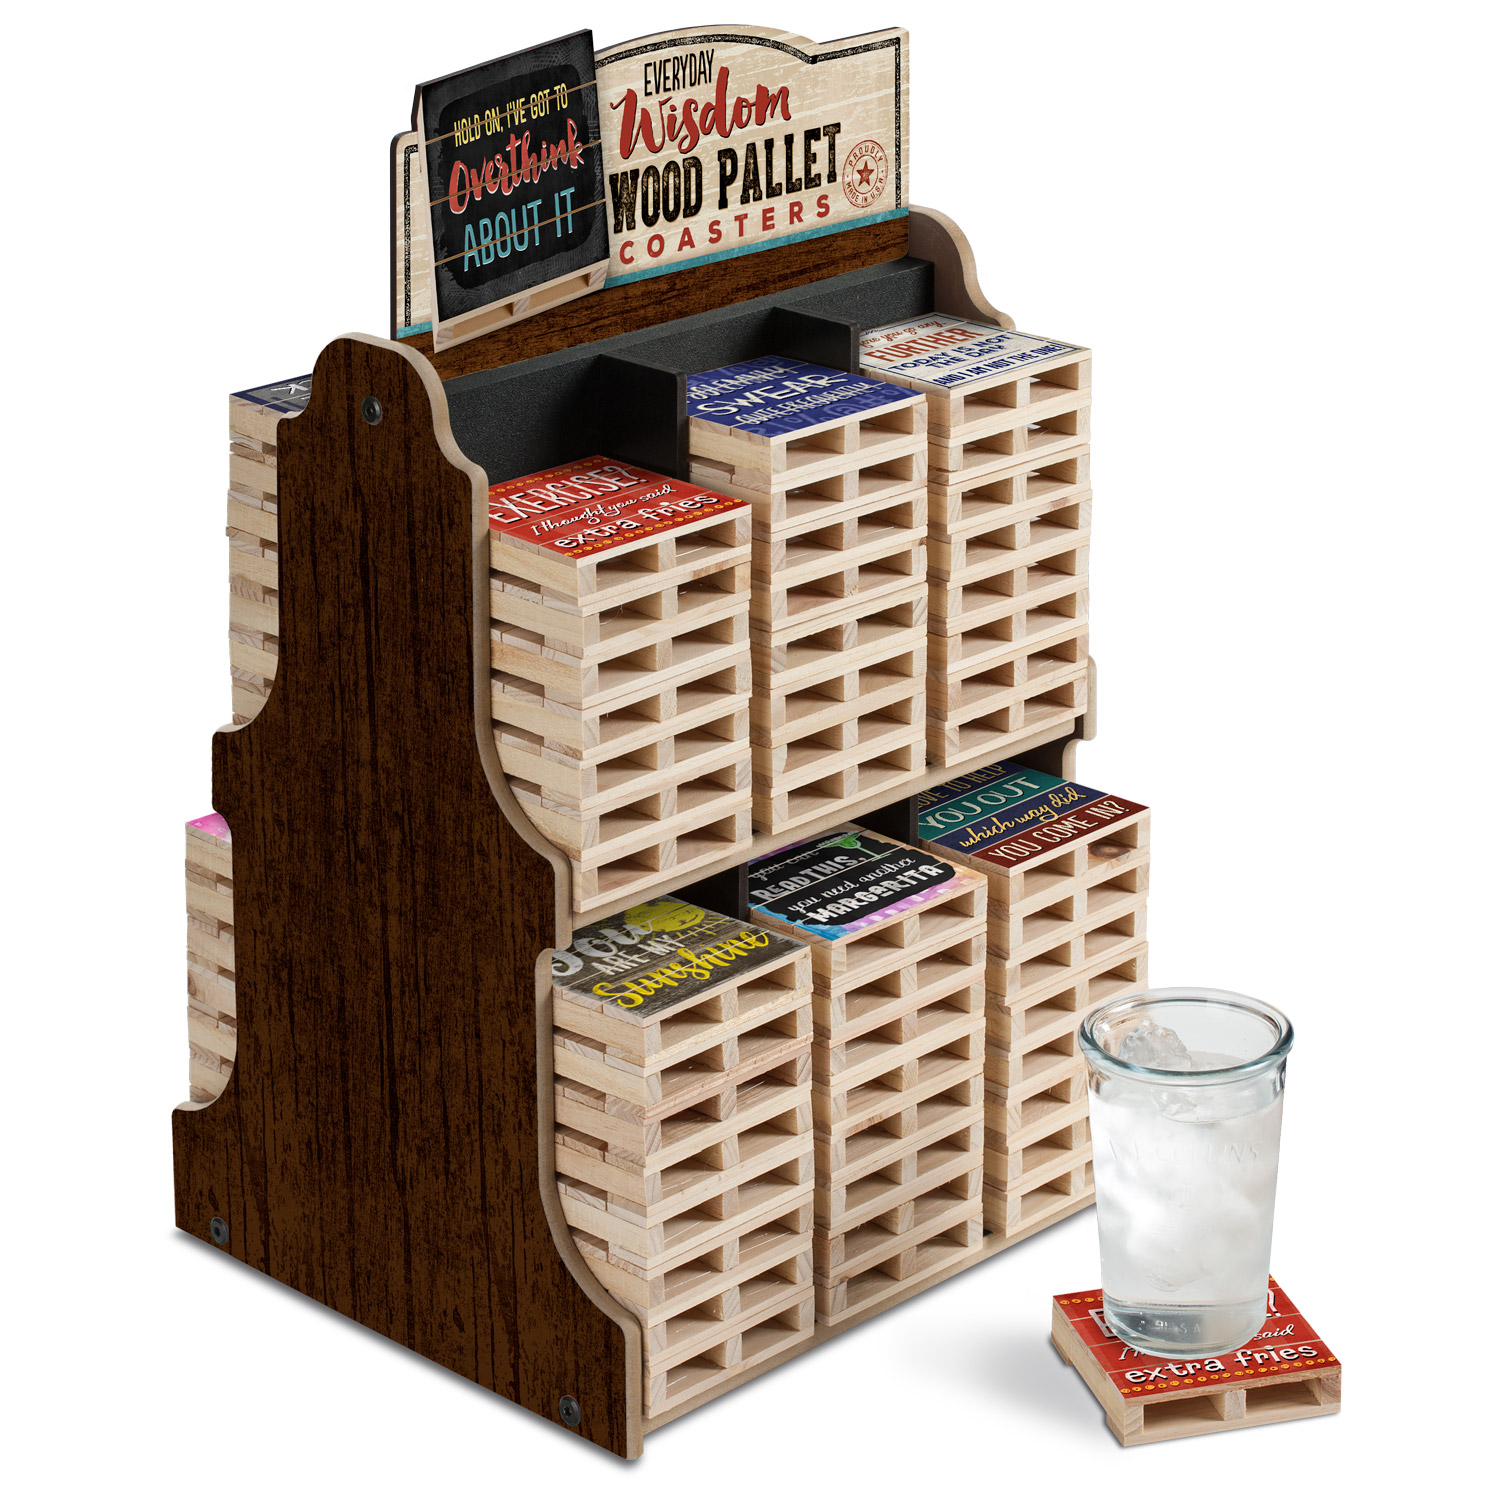 Pallet Coaster Collection - Everyday Wisdom